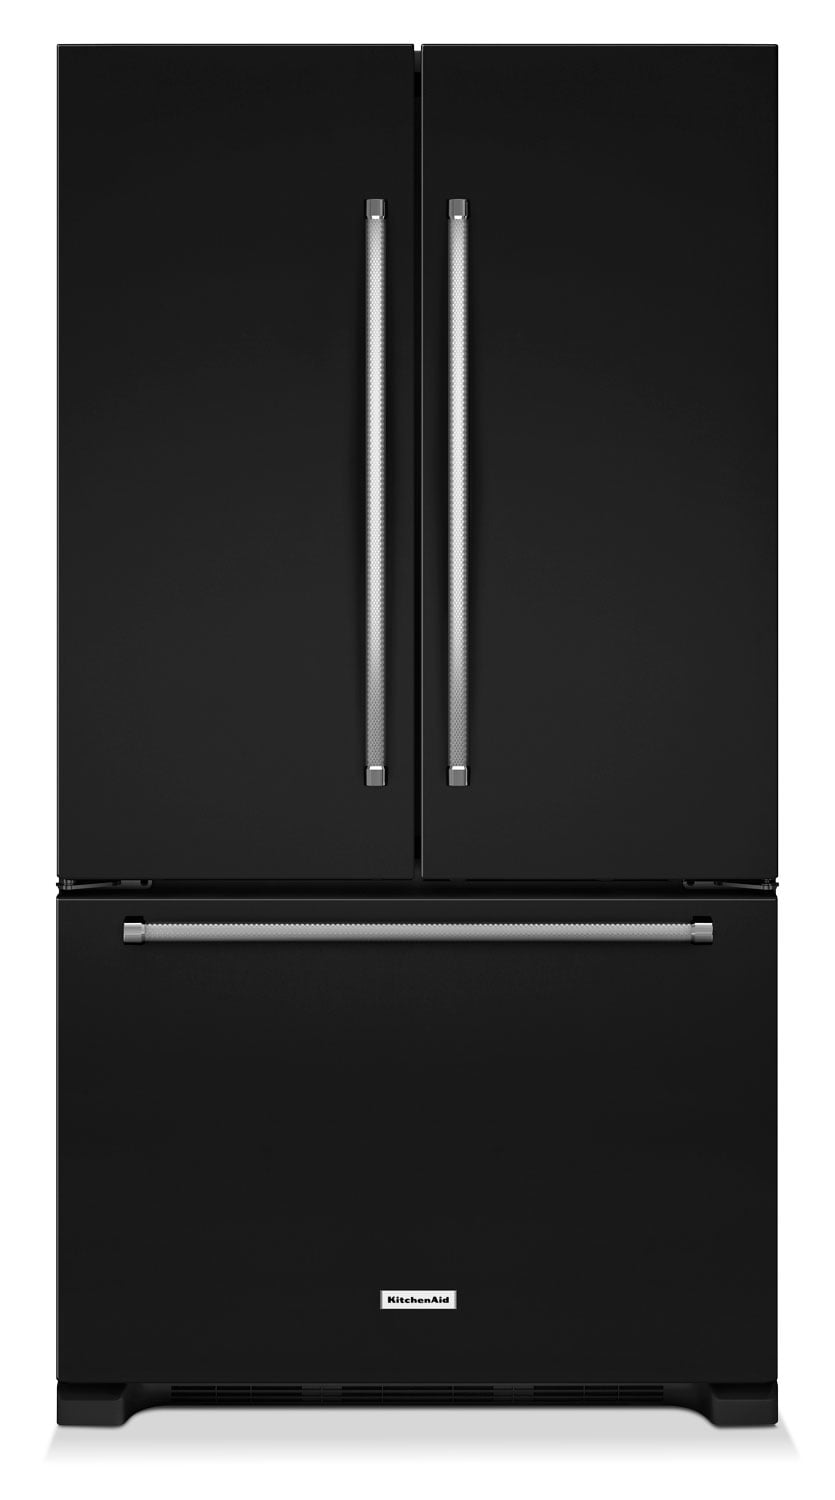 KitchenAid Black French Door Refrigerator (25 Cu. Ft.) - KRFF305EBL